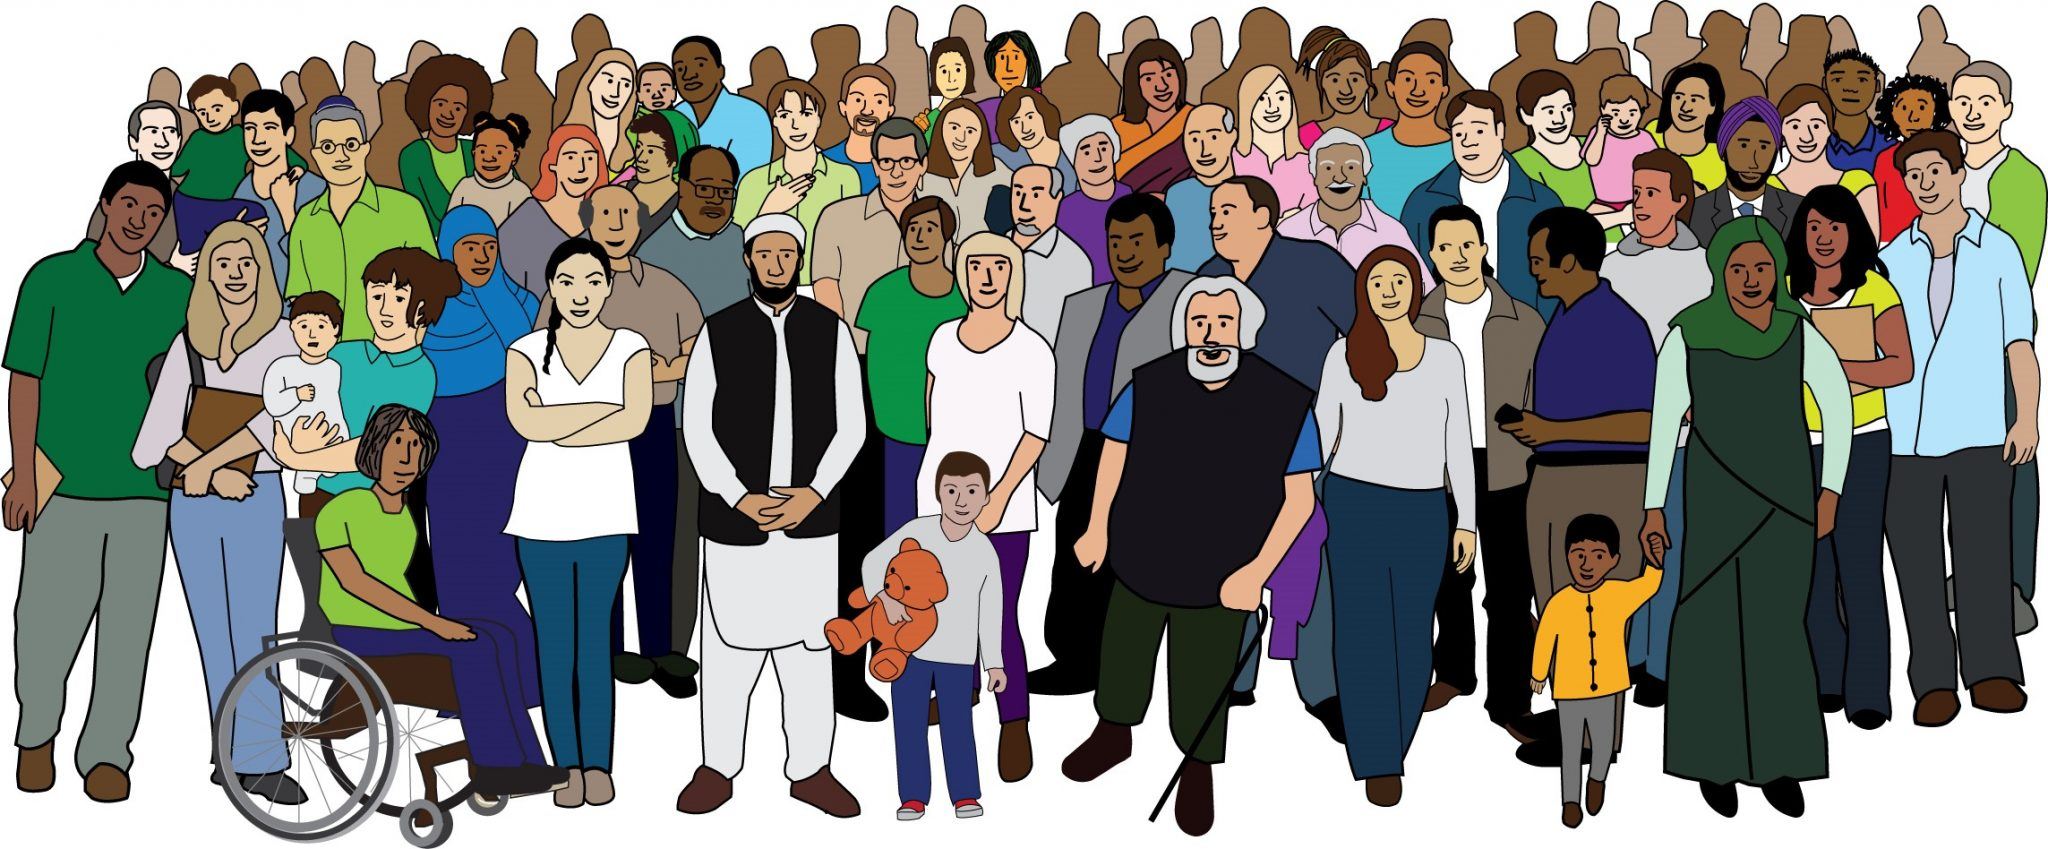 Illustration of a large group of people, many of whom are visibly Disabled.